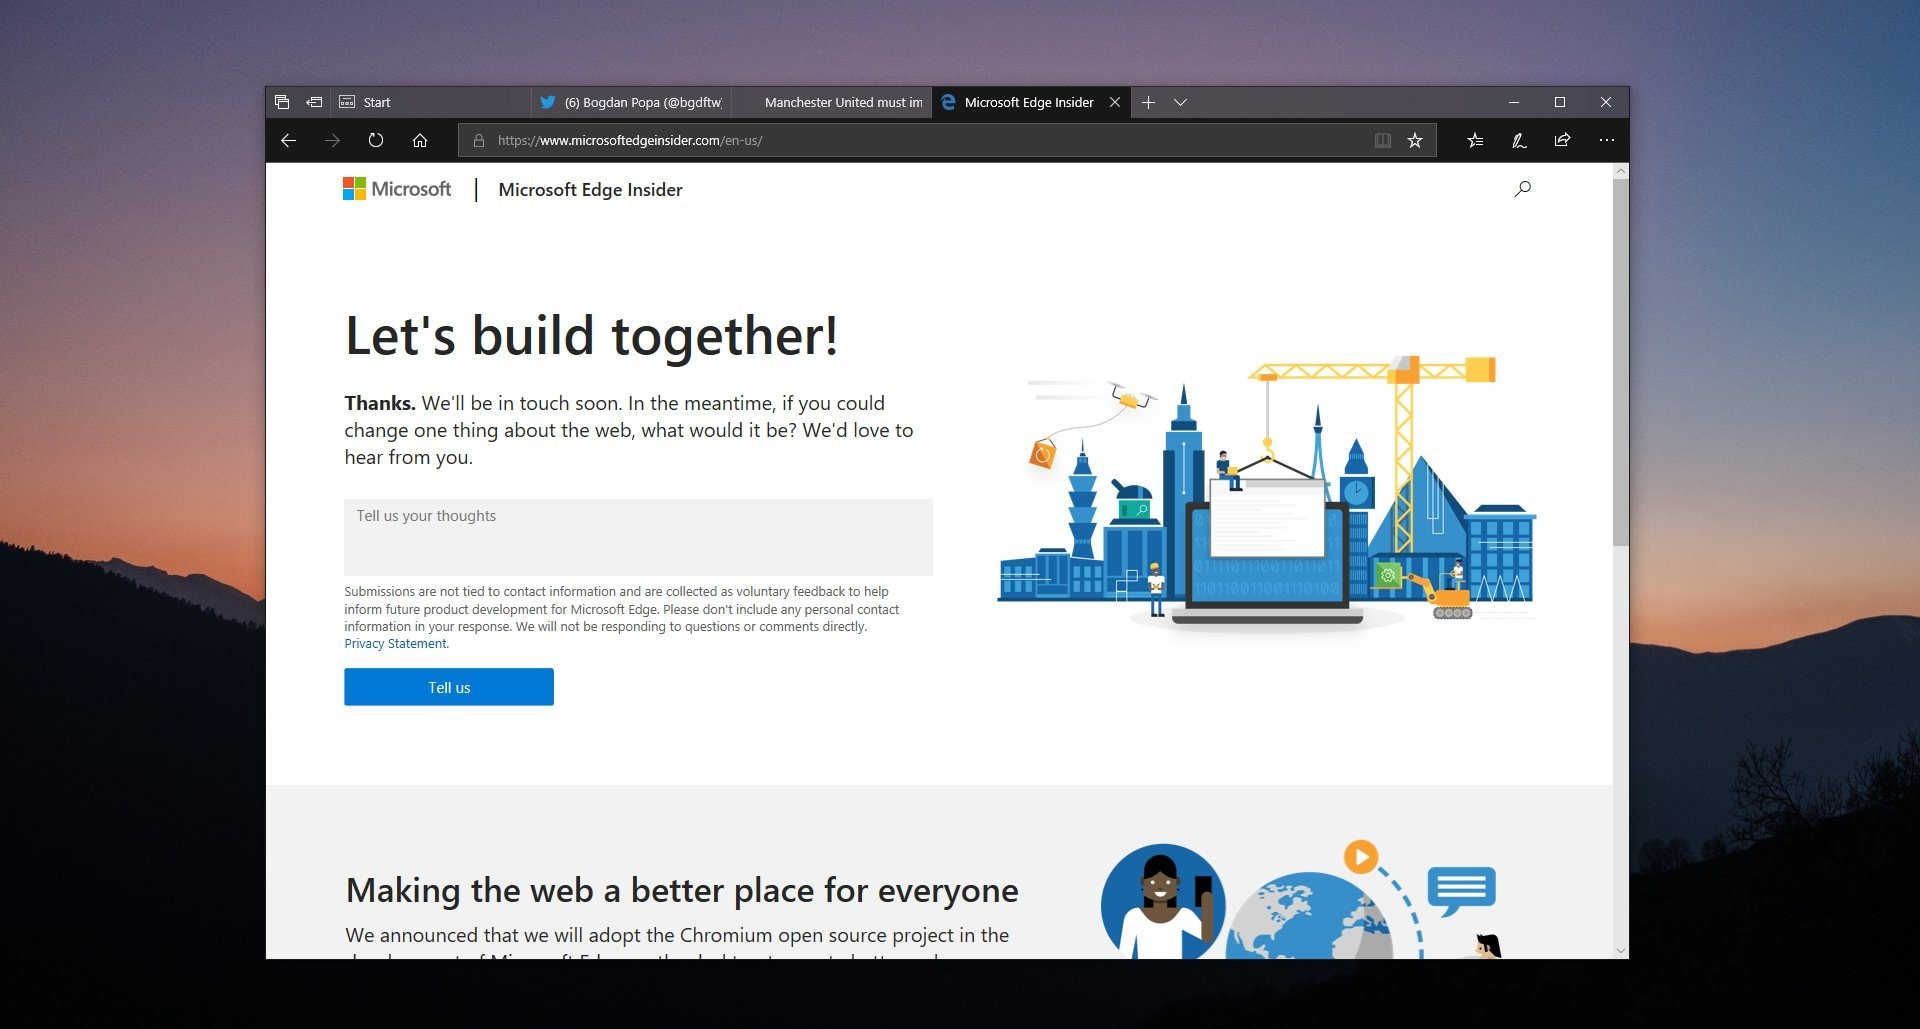 Microsoft's new Edge browser will support Chrome extensions